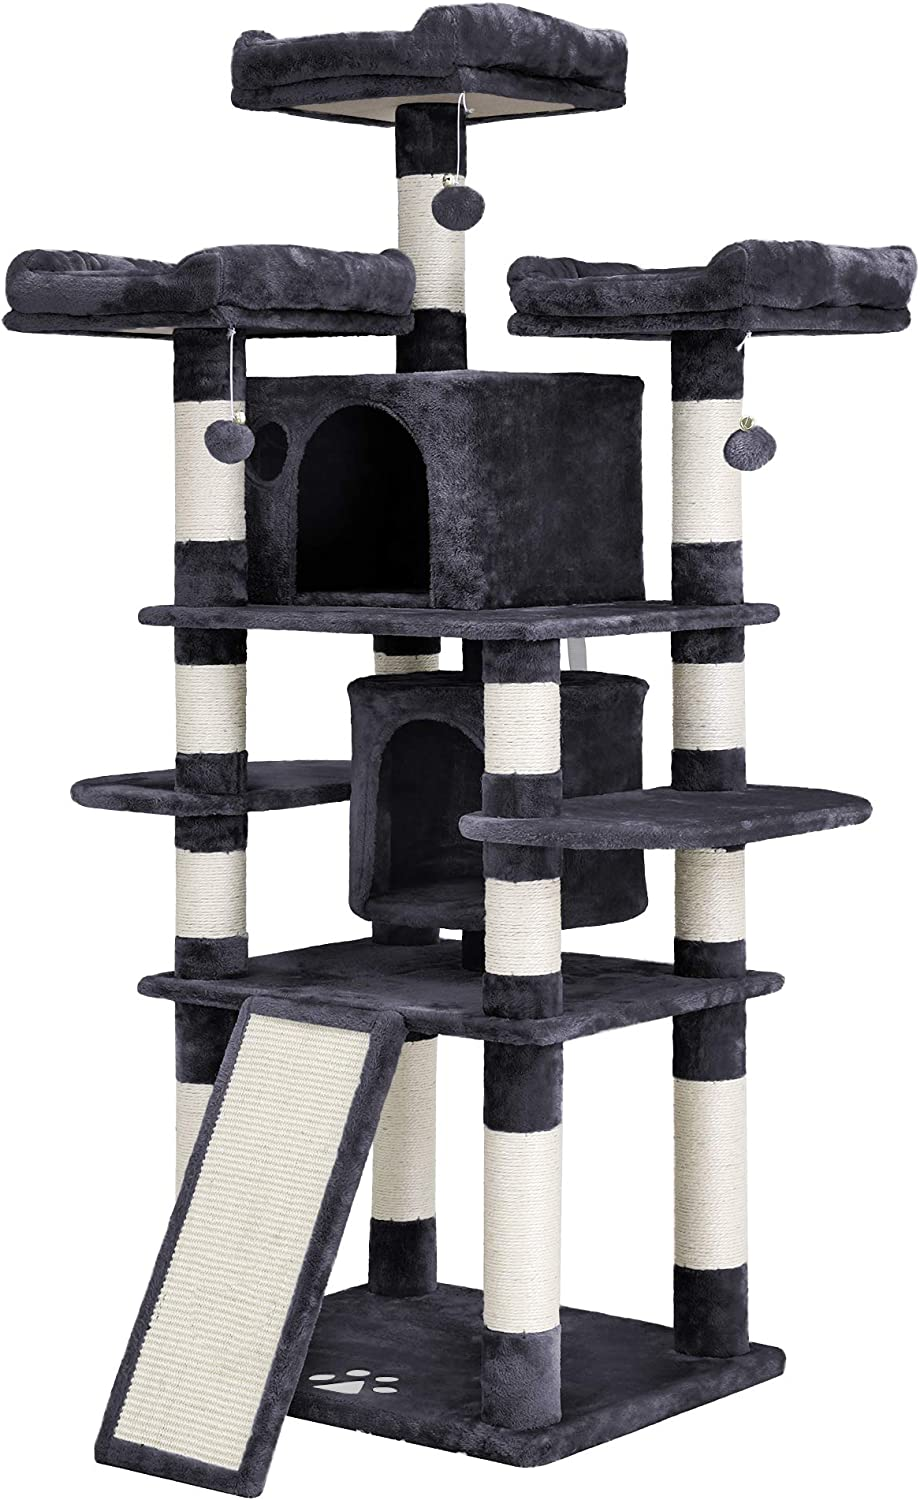 Top 10 Best Cat Tree For Large Cats [Updated November 2020] 9